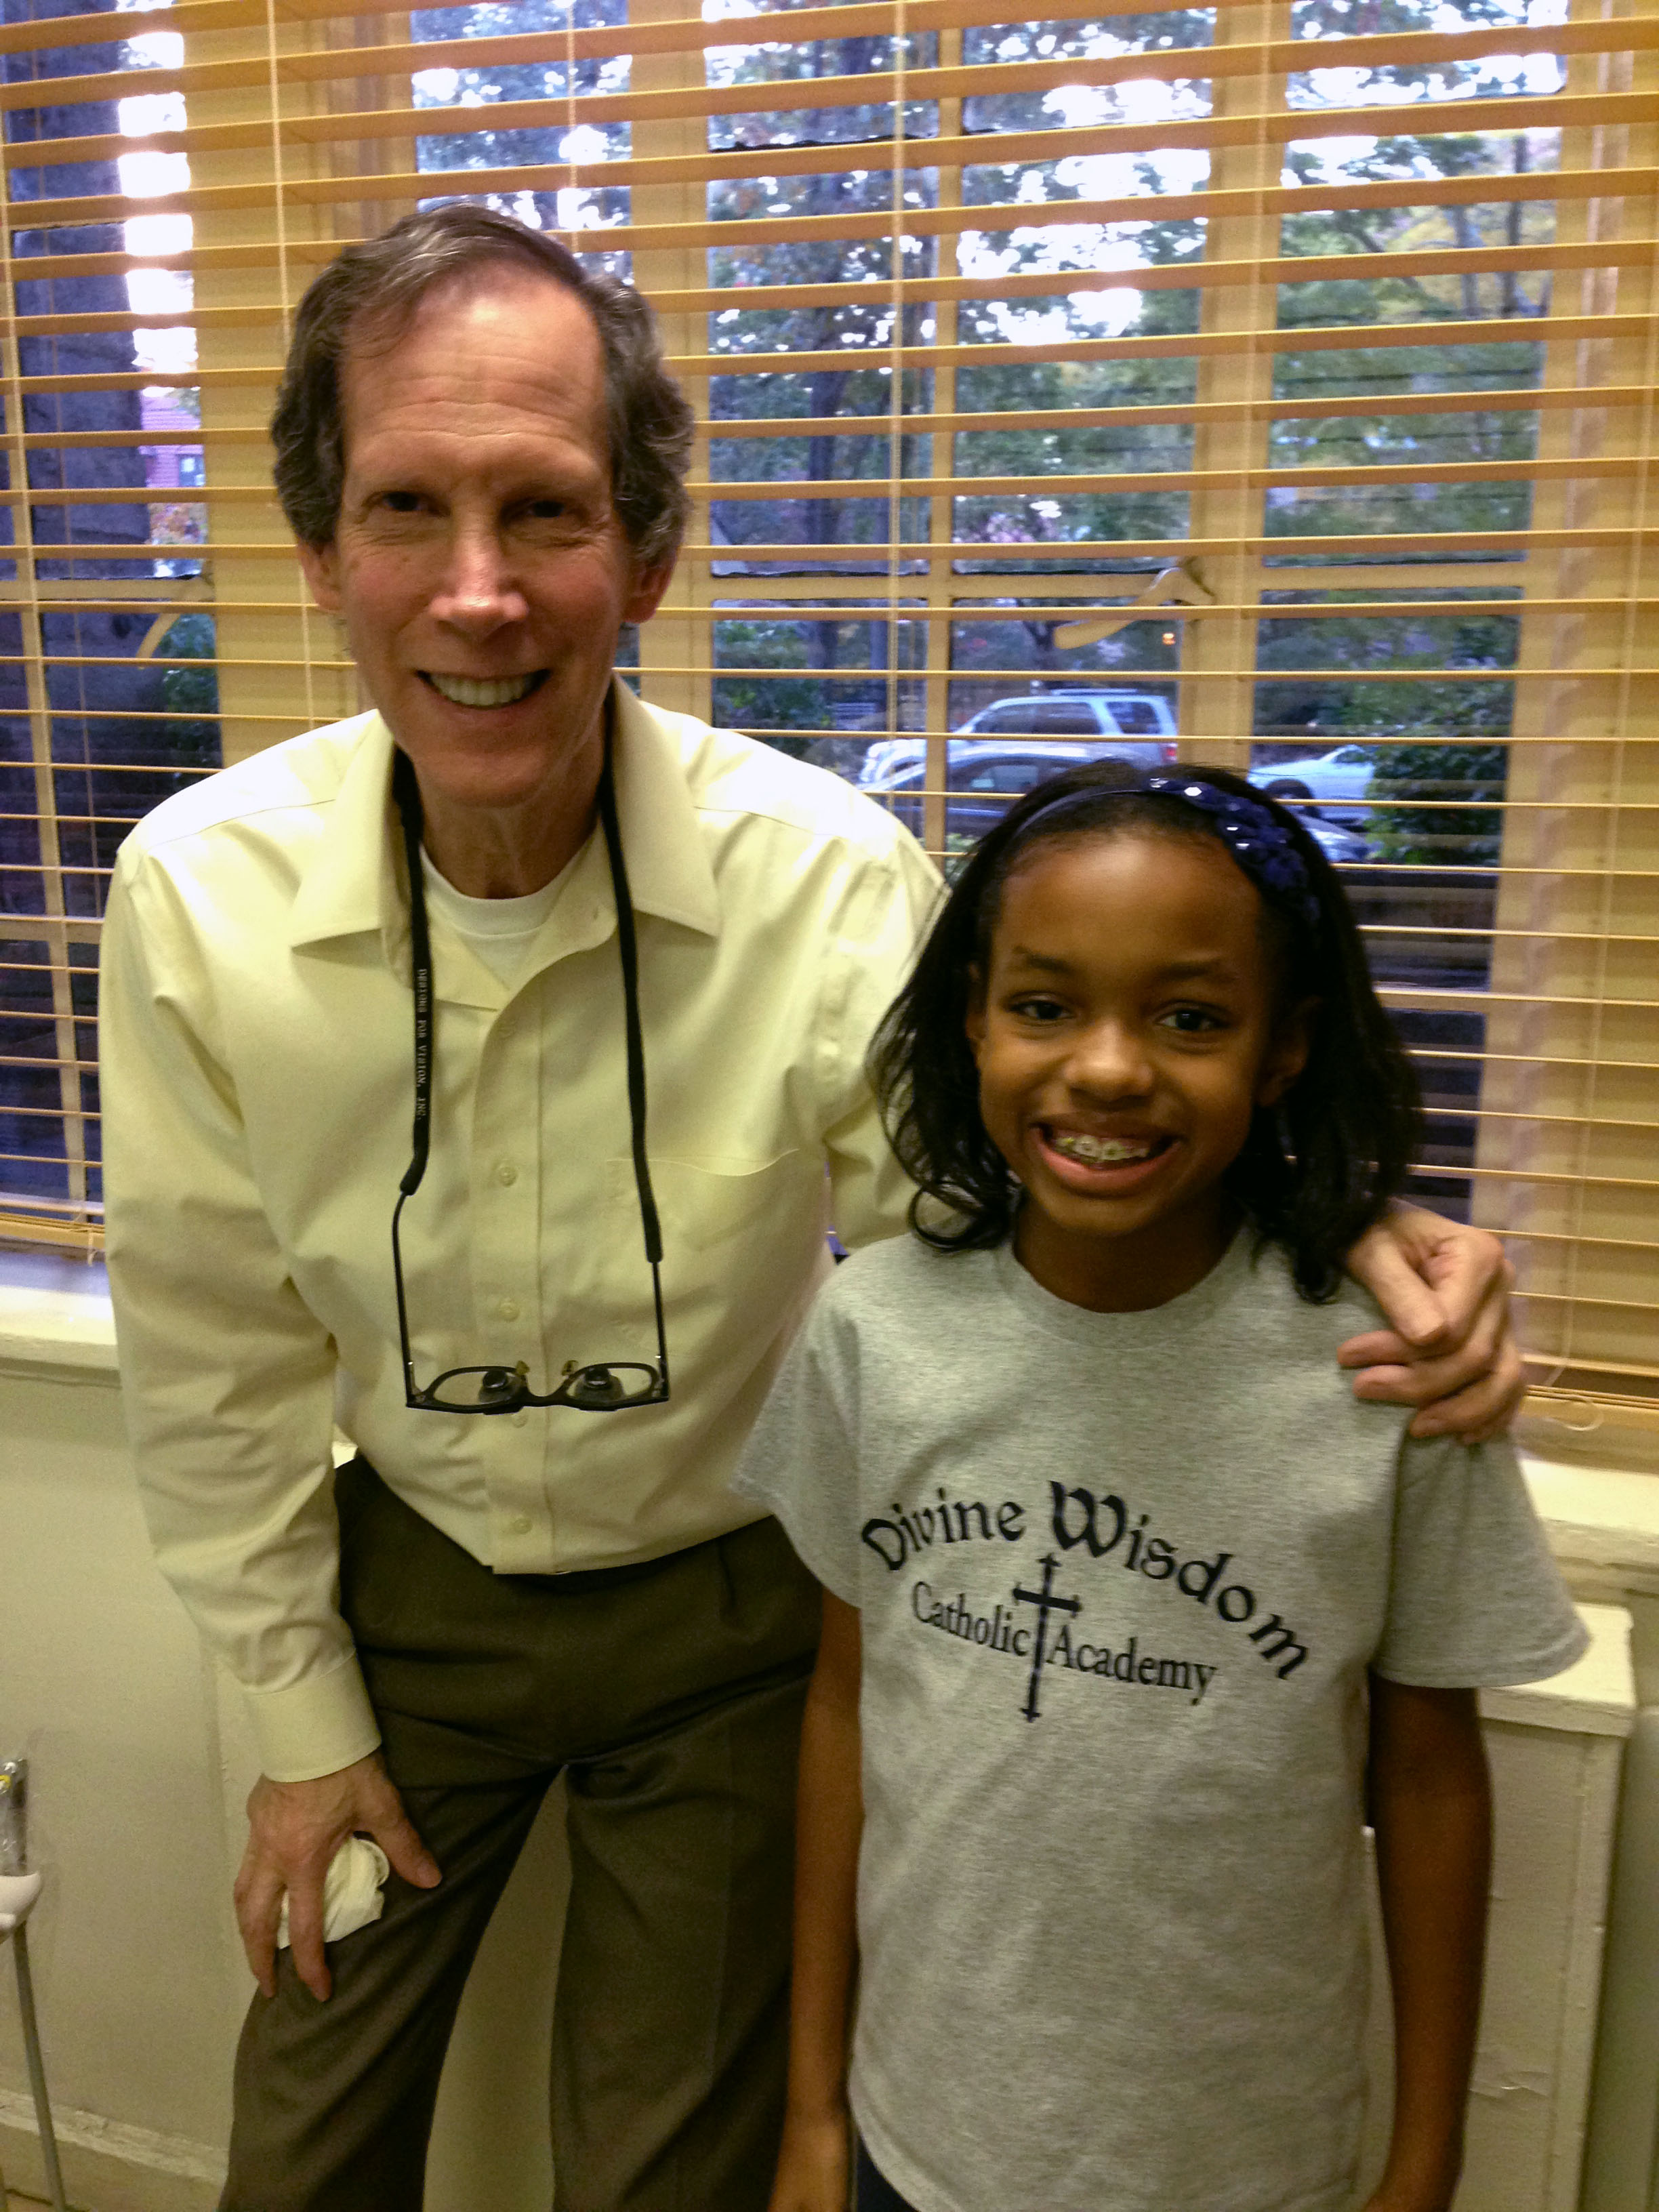 dr. halberstadt and a young patient with her new braces bronx ny